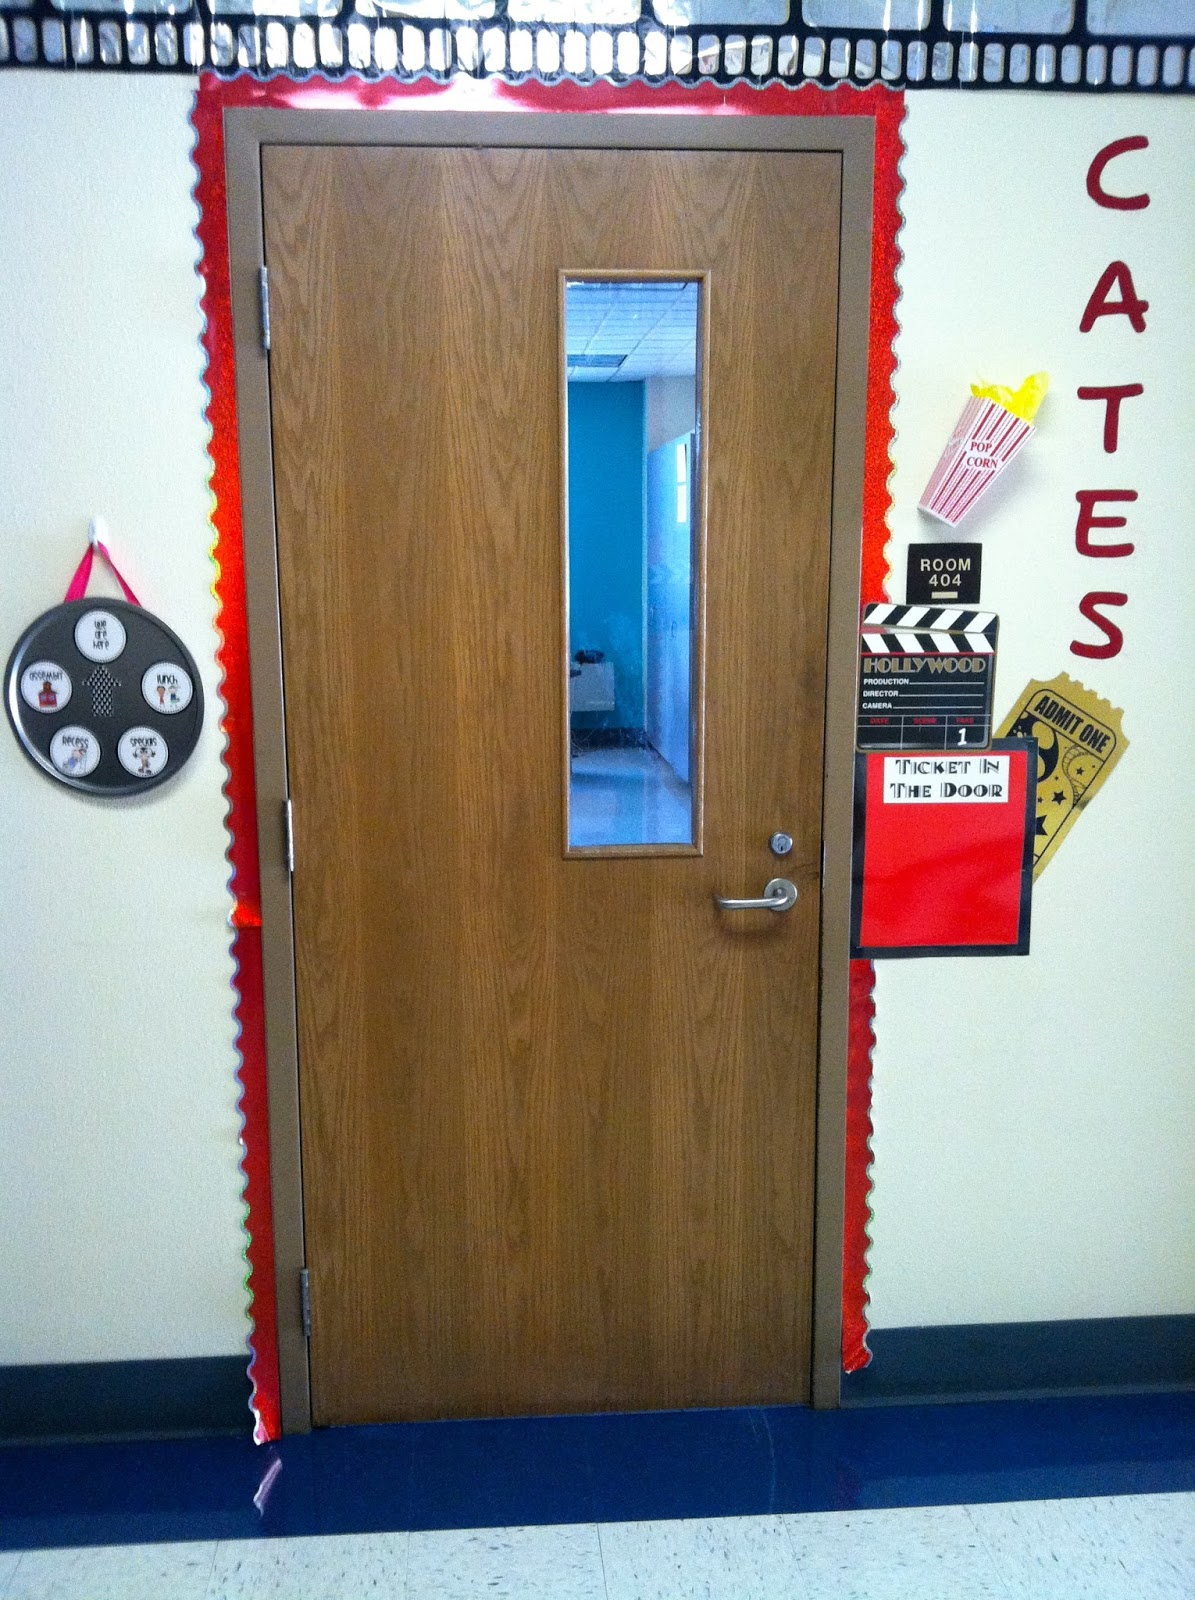 The Hallway Is Hollywood Themed  Still Have To Decorate The Door.